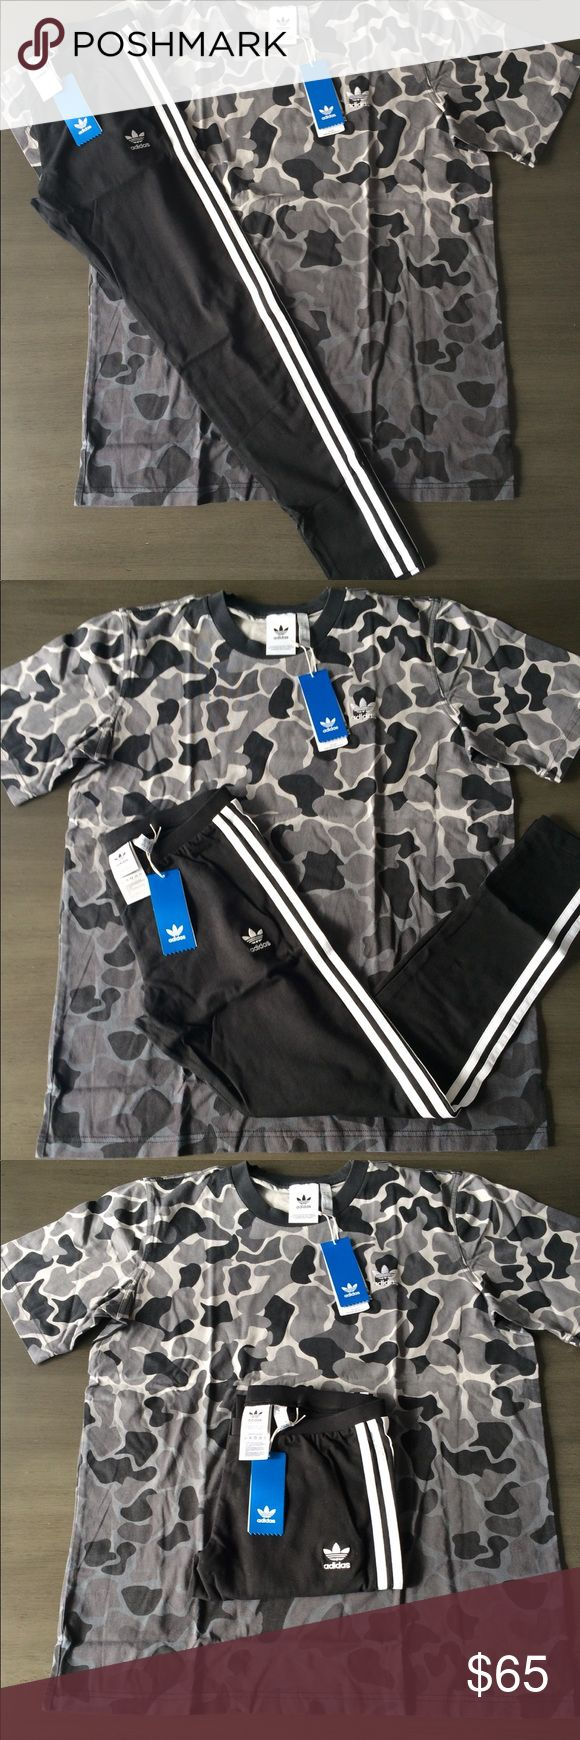 Predownload: Nwt Adidas Outfit Set Tshirt Black Legging Tights Adidas Outfit Tight Leggings Camo Outfits [ 1740 x 580 Pixel ]